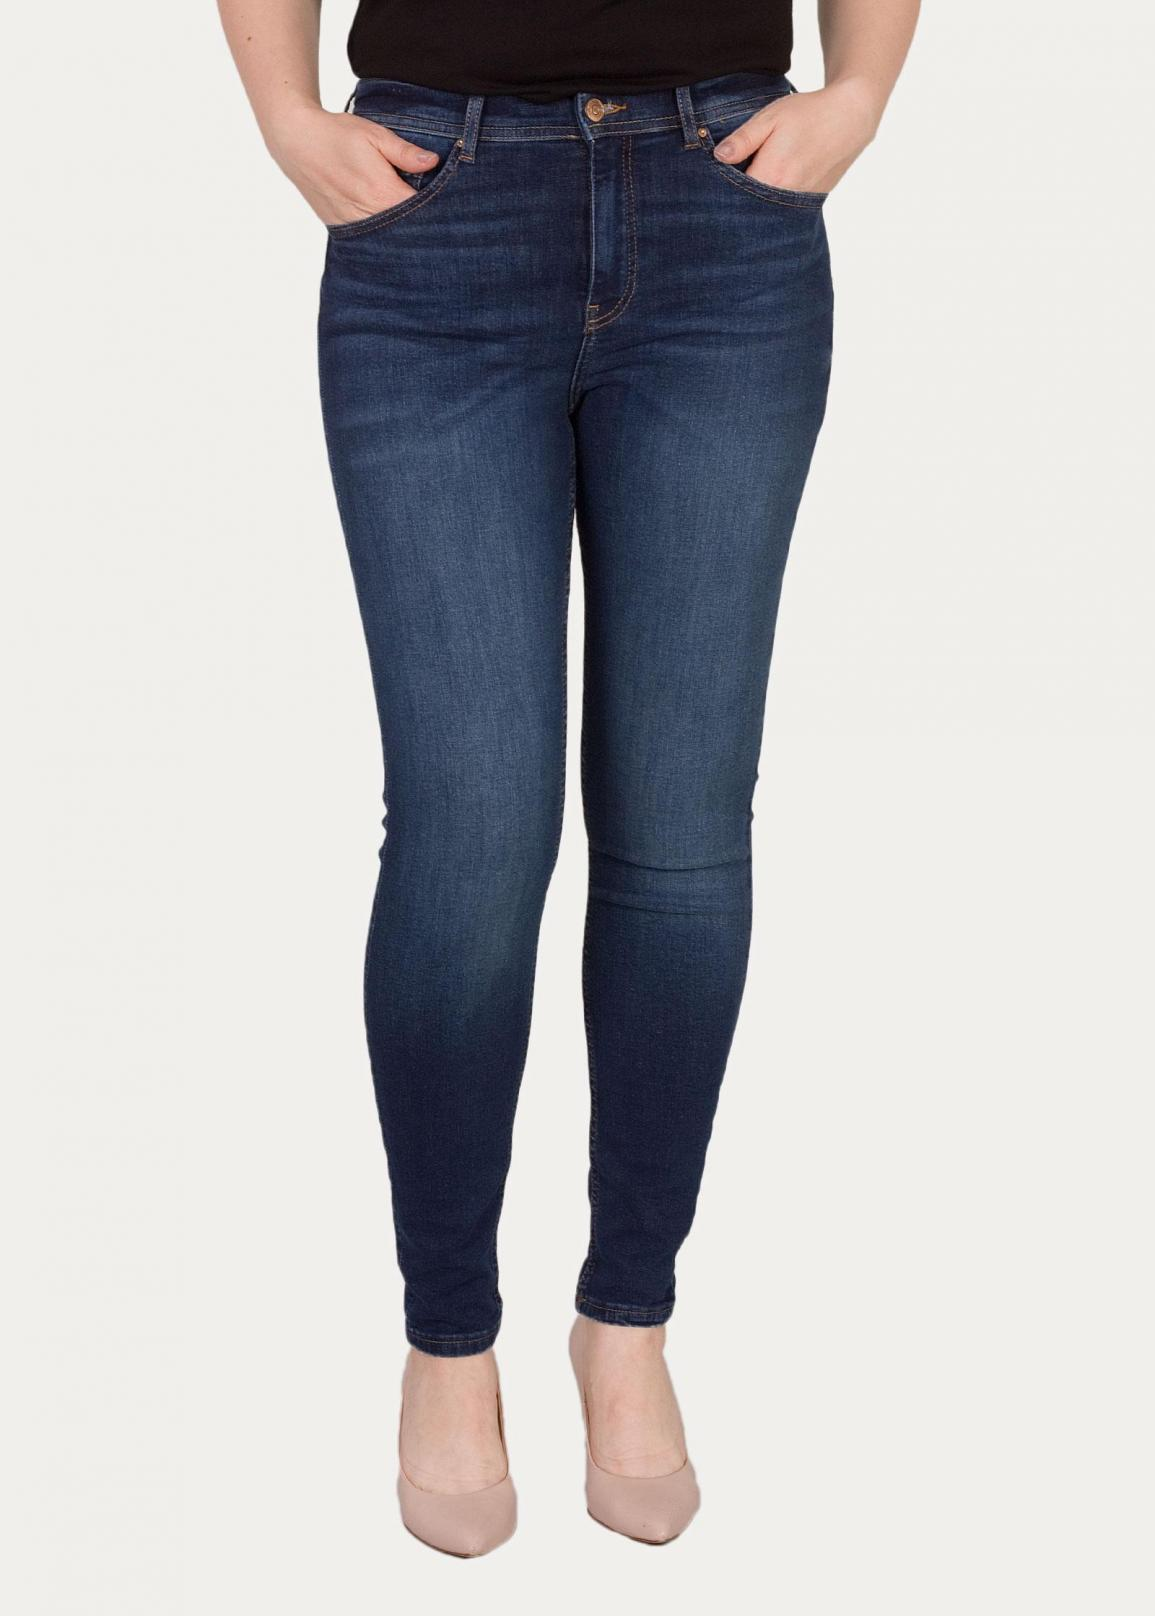 Cross Jeans® Judy - Denim Blue (046)